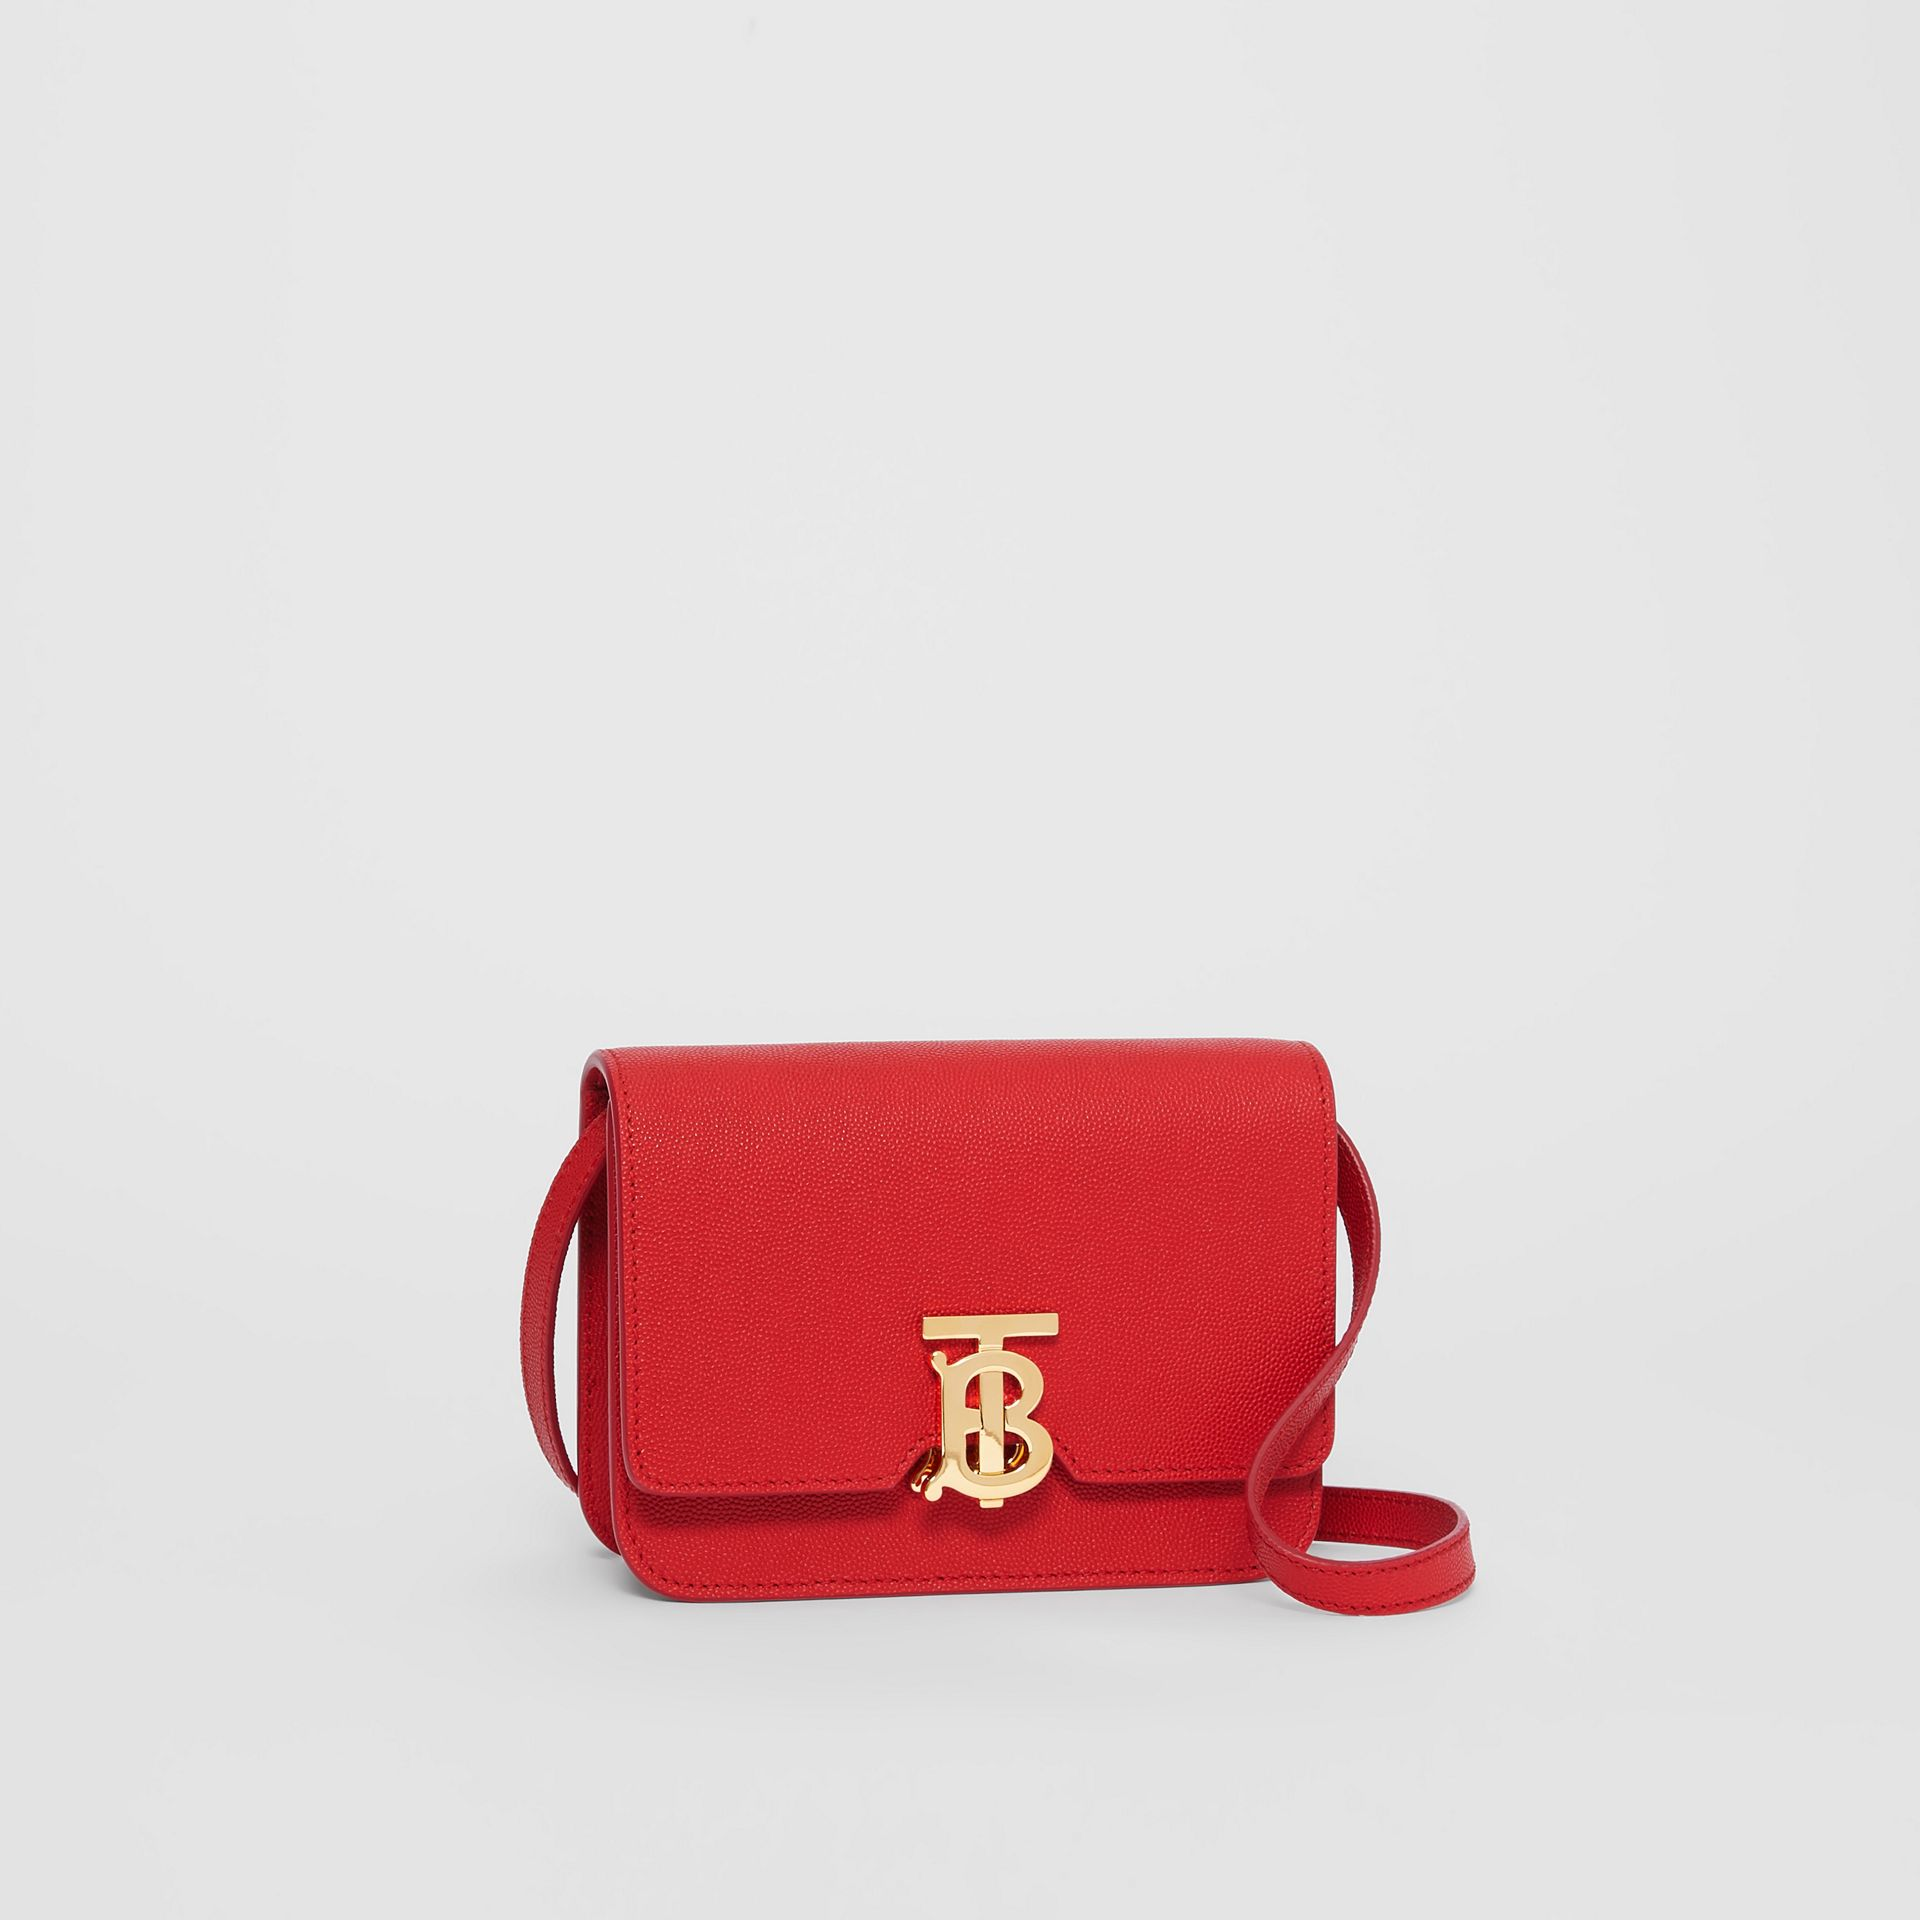 Mini Grainy Leather TB Bag in Bright Red - Women | Burberry United States - gallery image 4